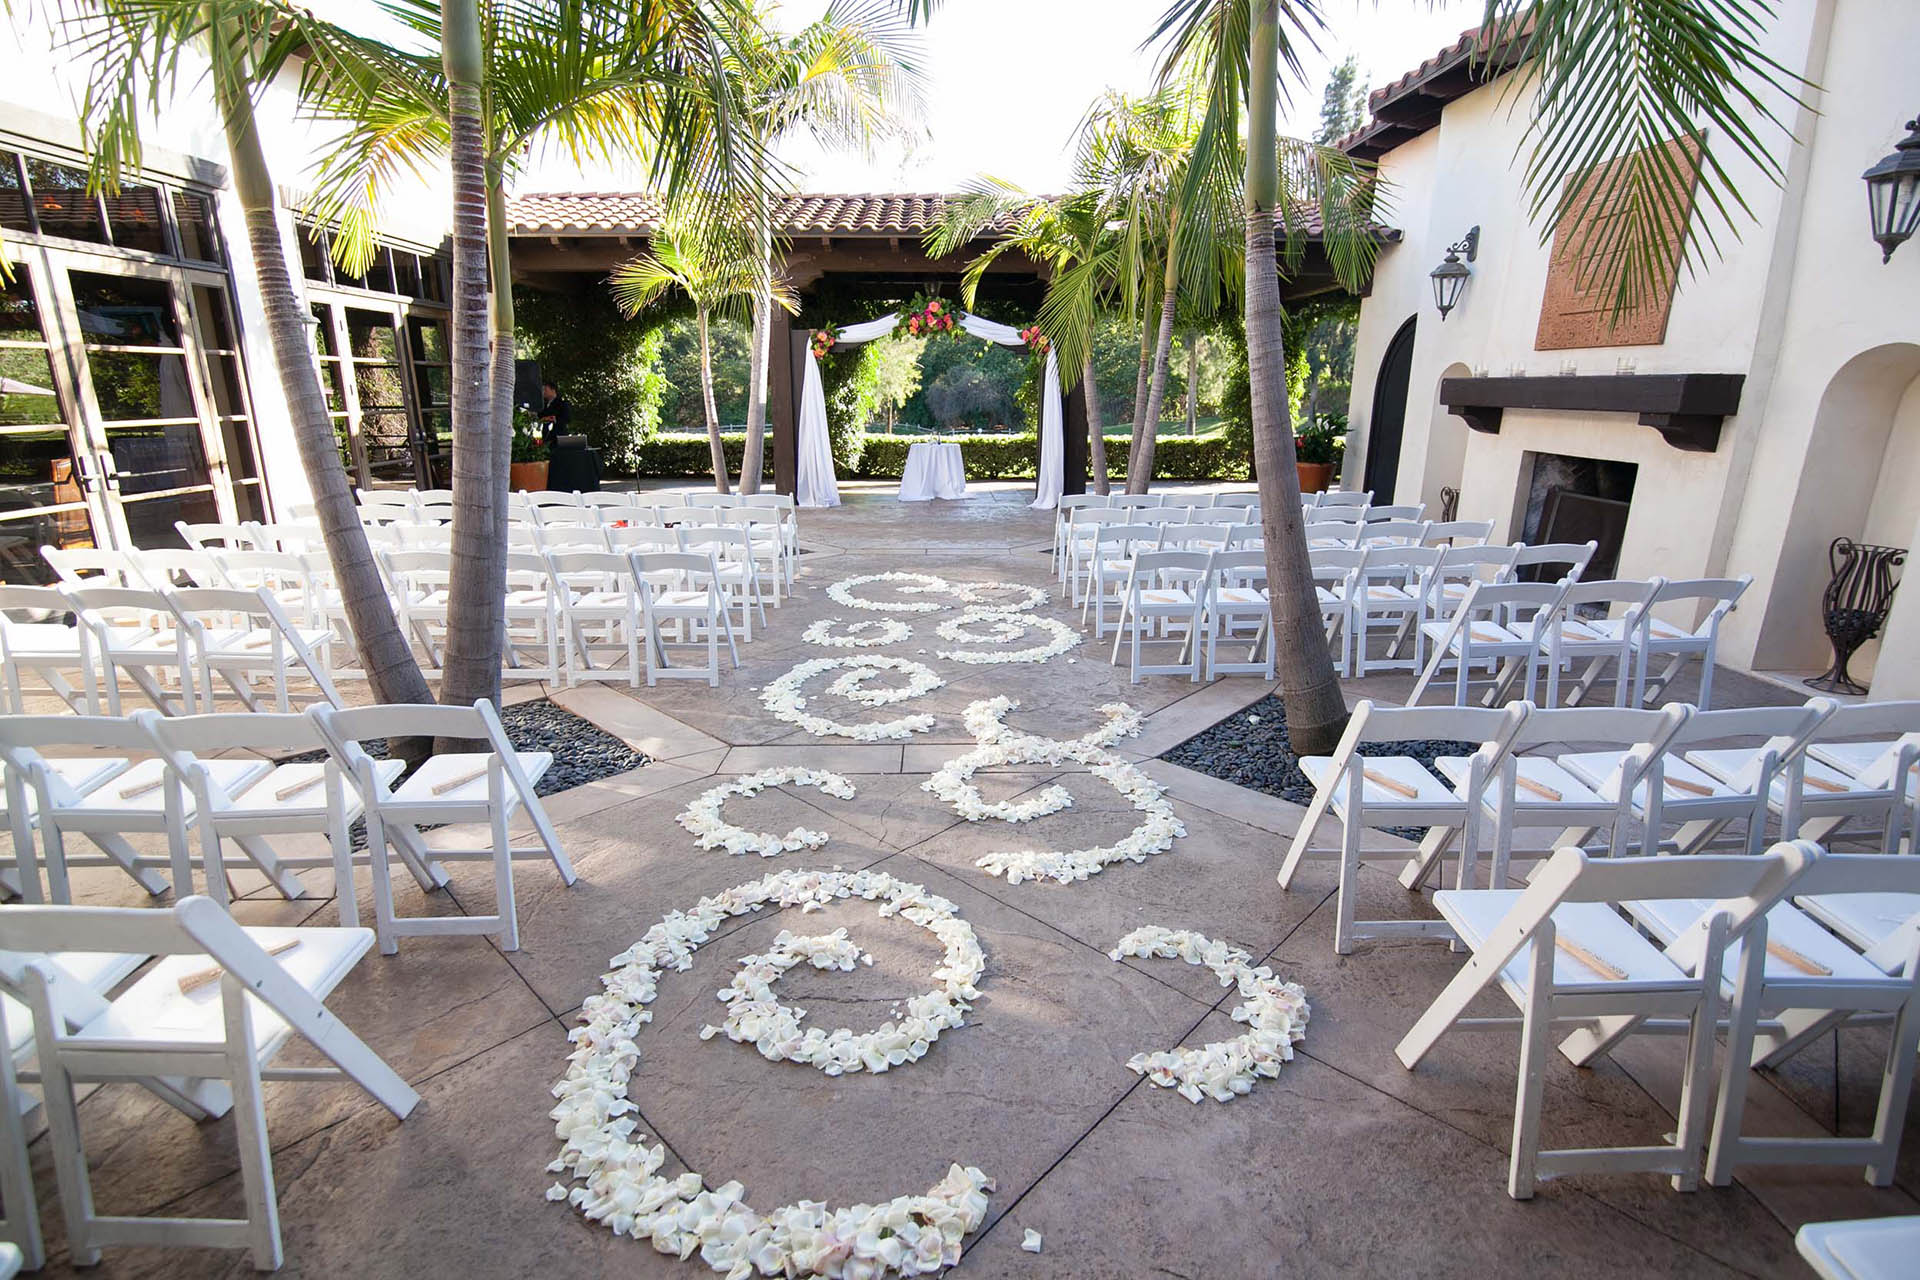 Spanish style ceremony site with floral carpet